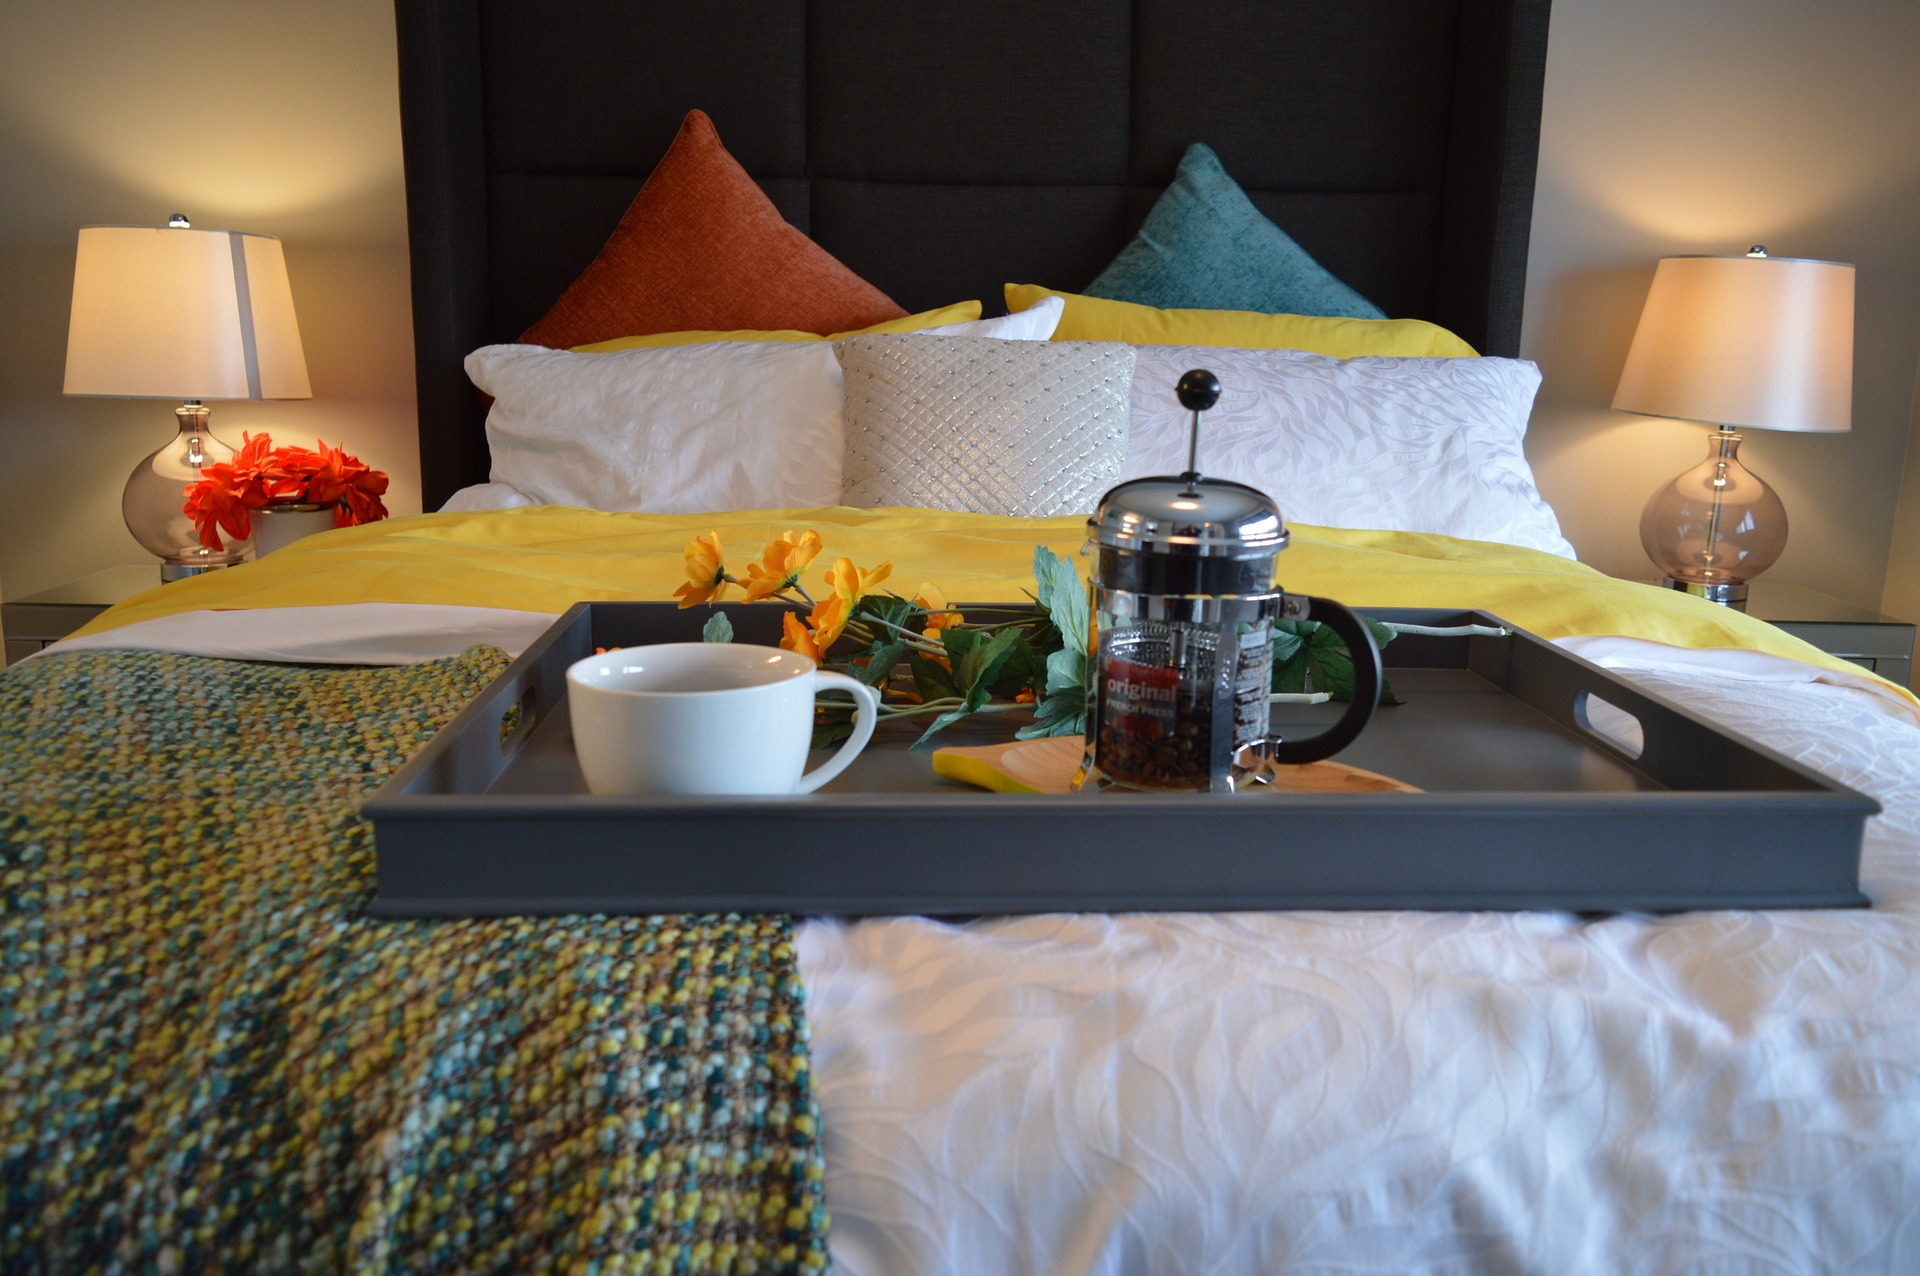 breakfast-in-bed-1158270_1920.jpg